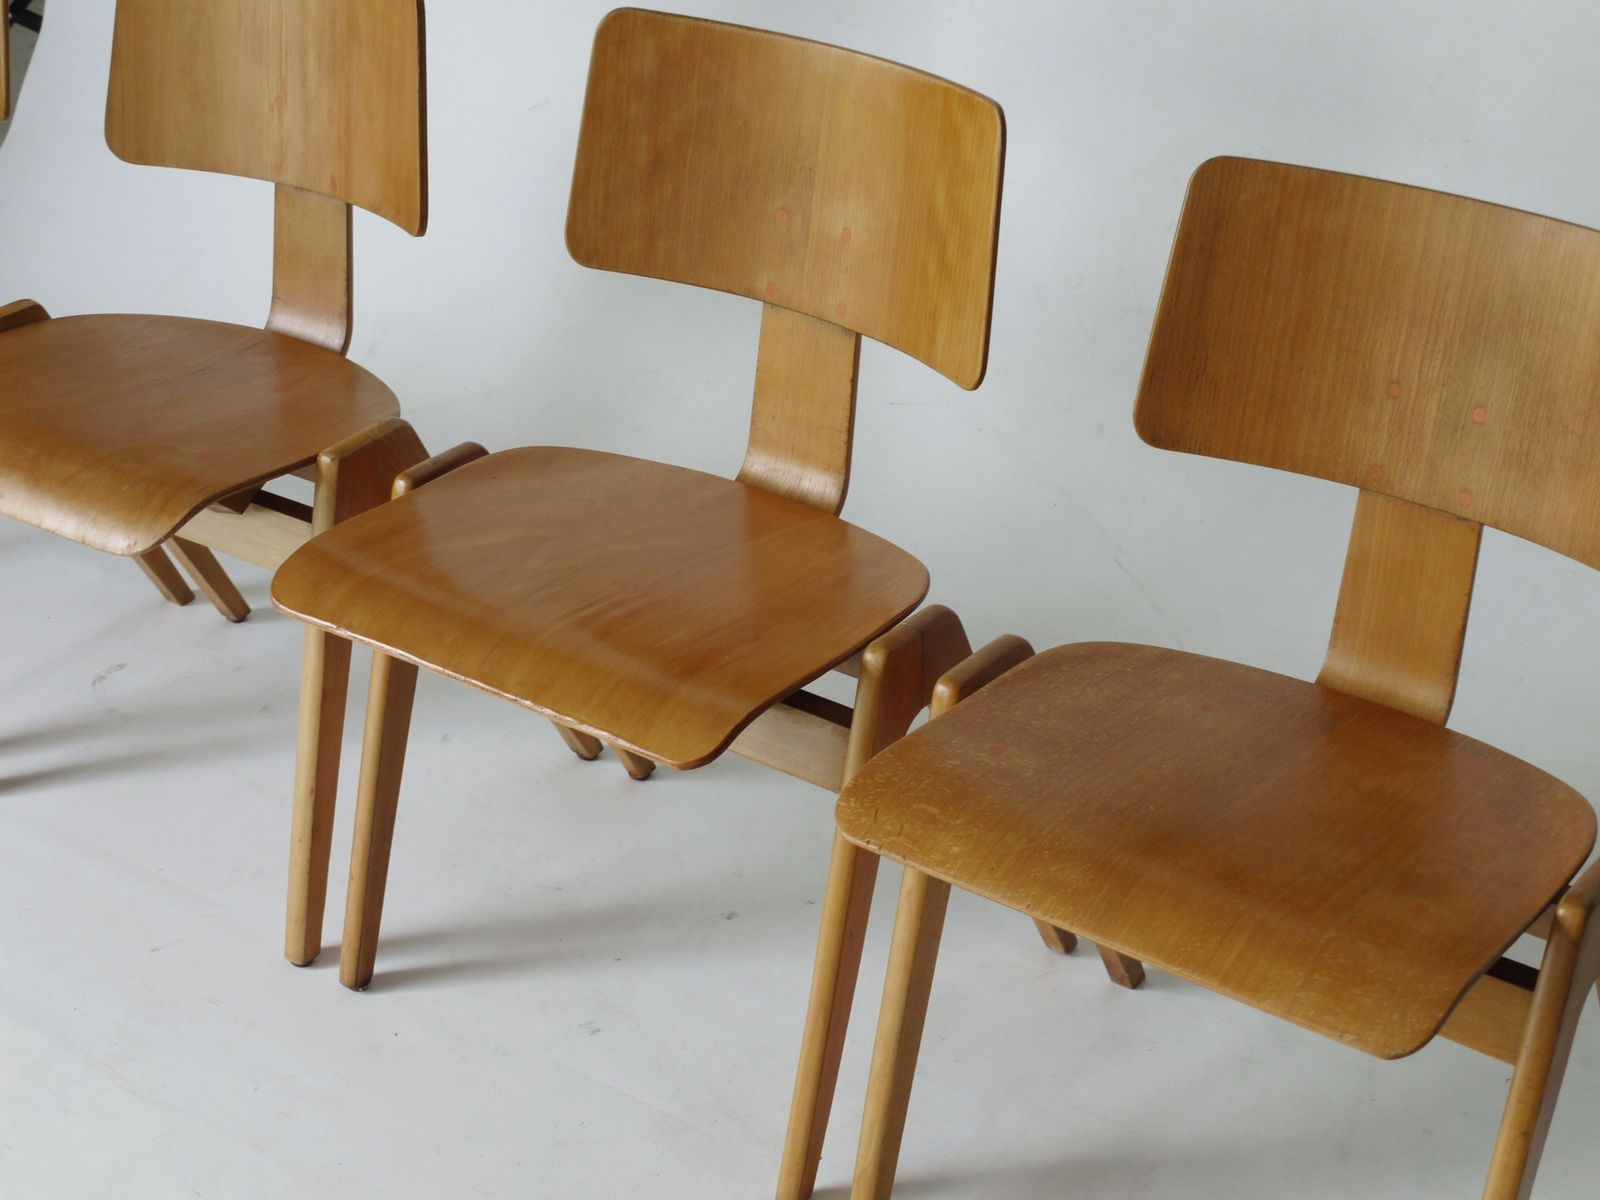 hillestak chairs by robin day for hillie 1950s set of 4 for sale at